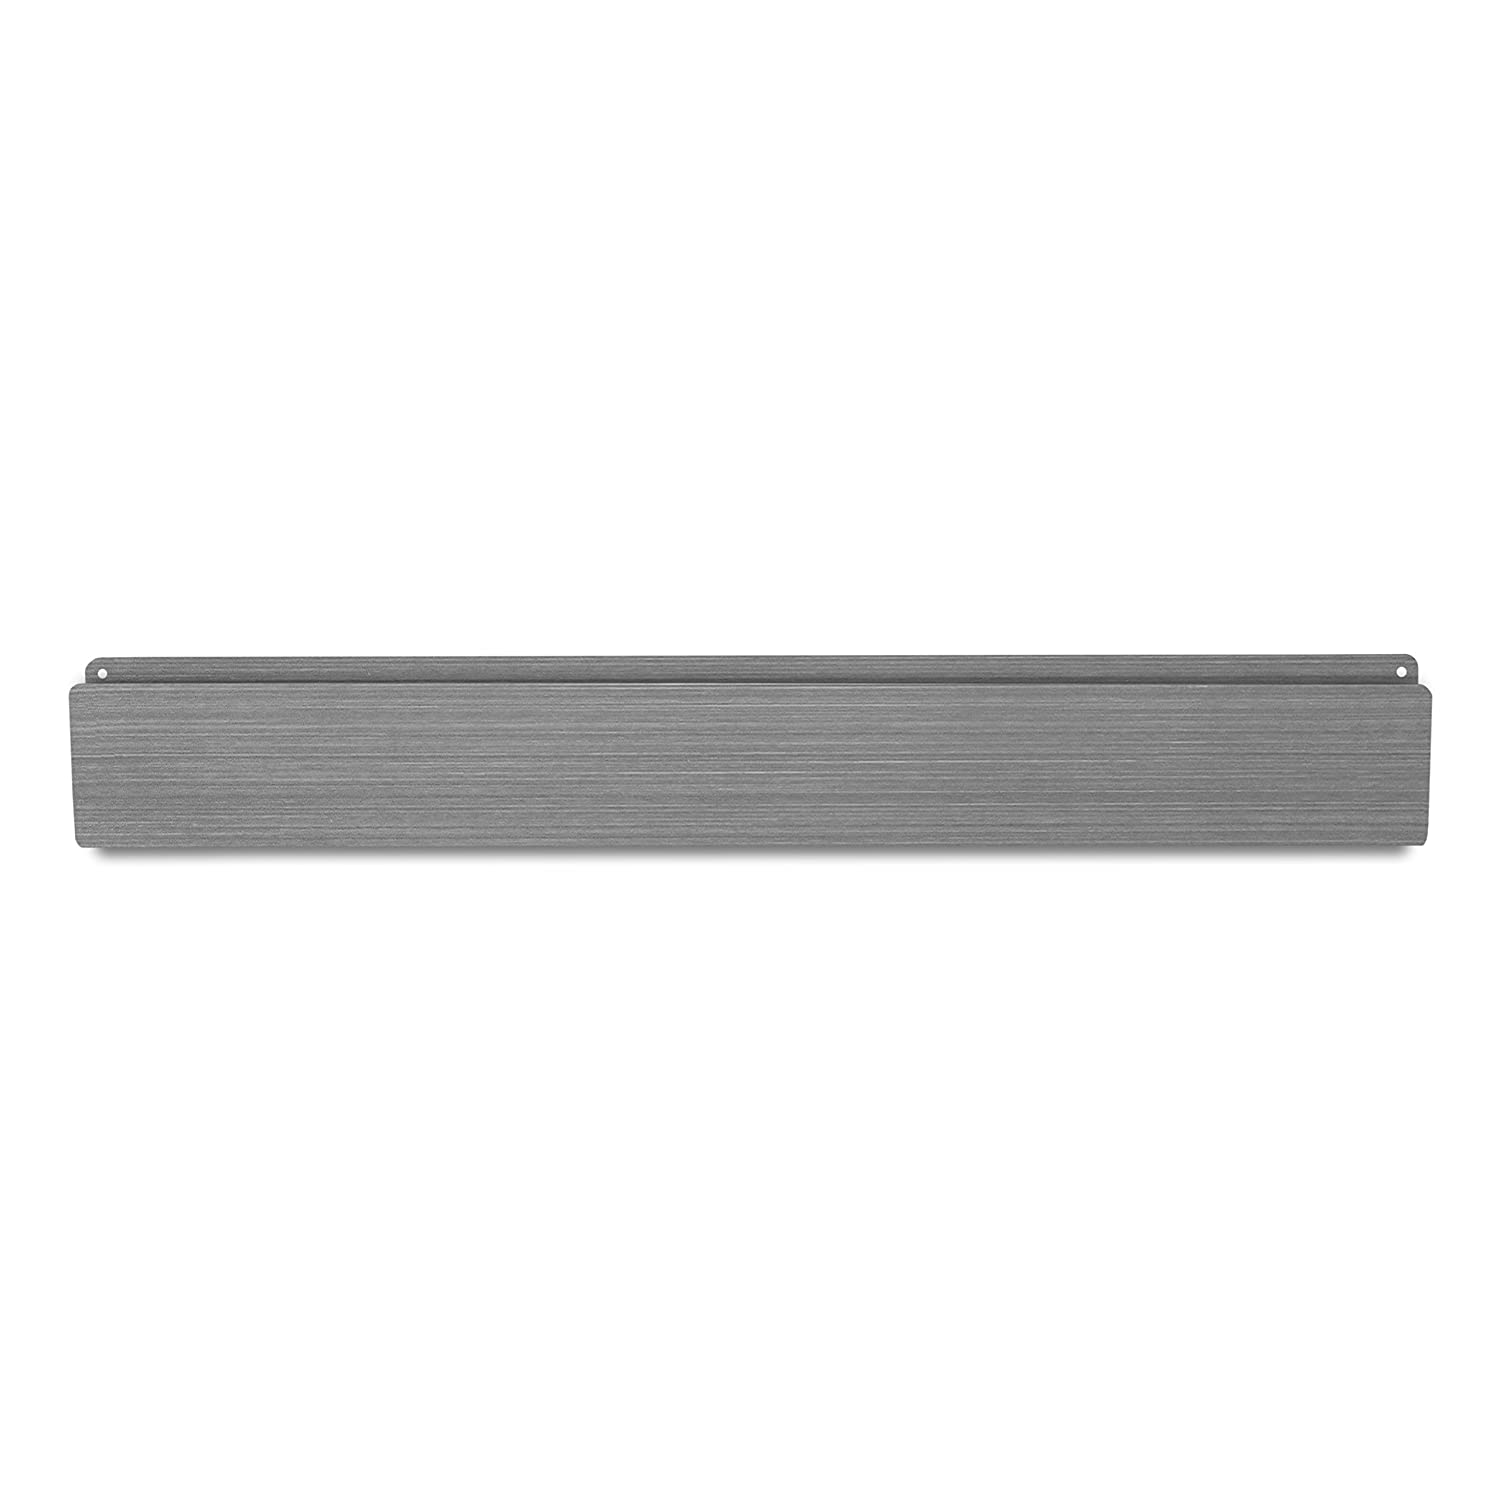 Stainless 35240 Three By Three Seattle Pocket Strip Magnetic Wall Organize